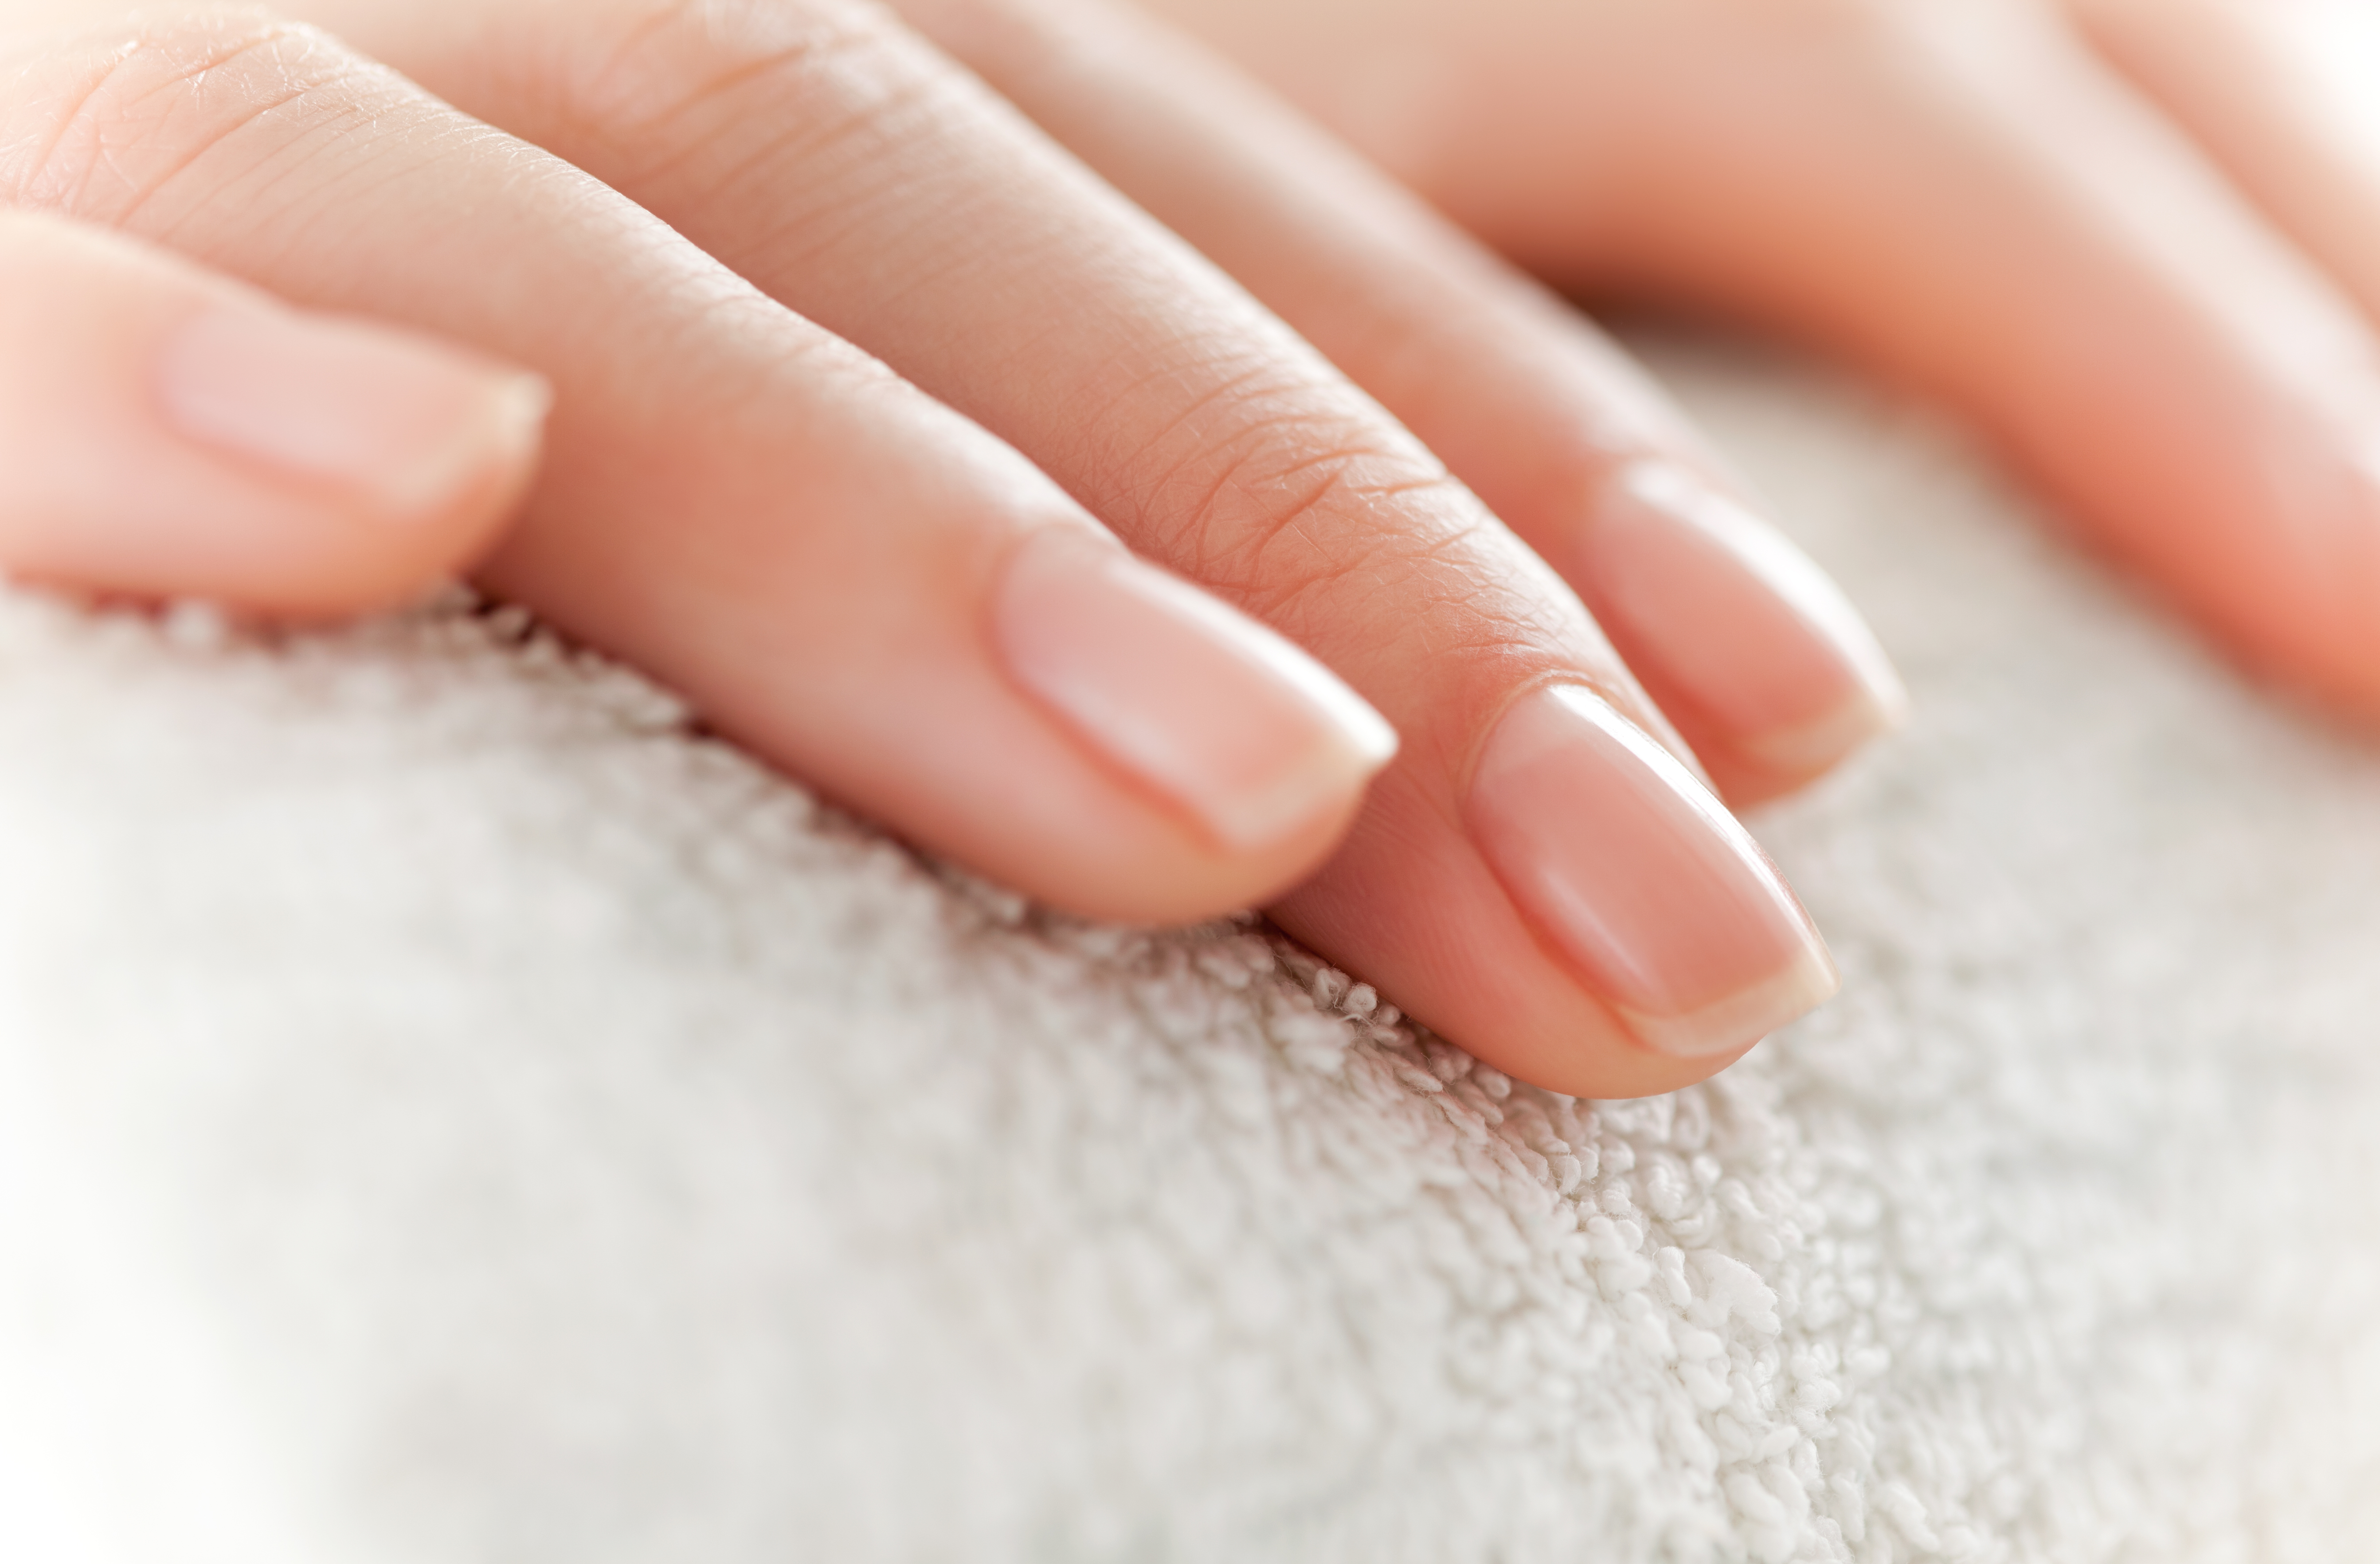 How Long Does It Take to Dry Your Toenails After a Pedicure